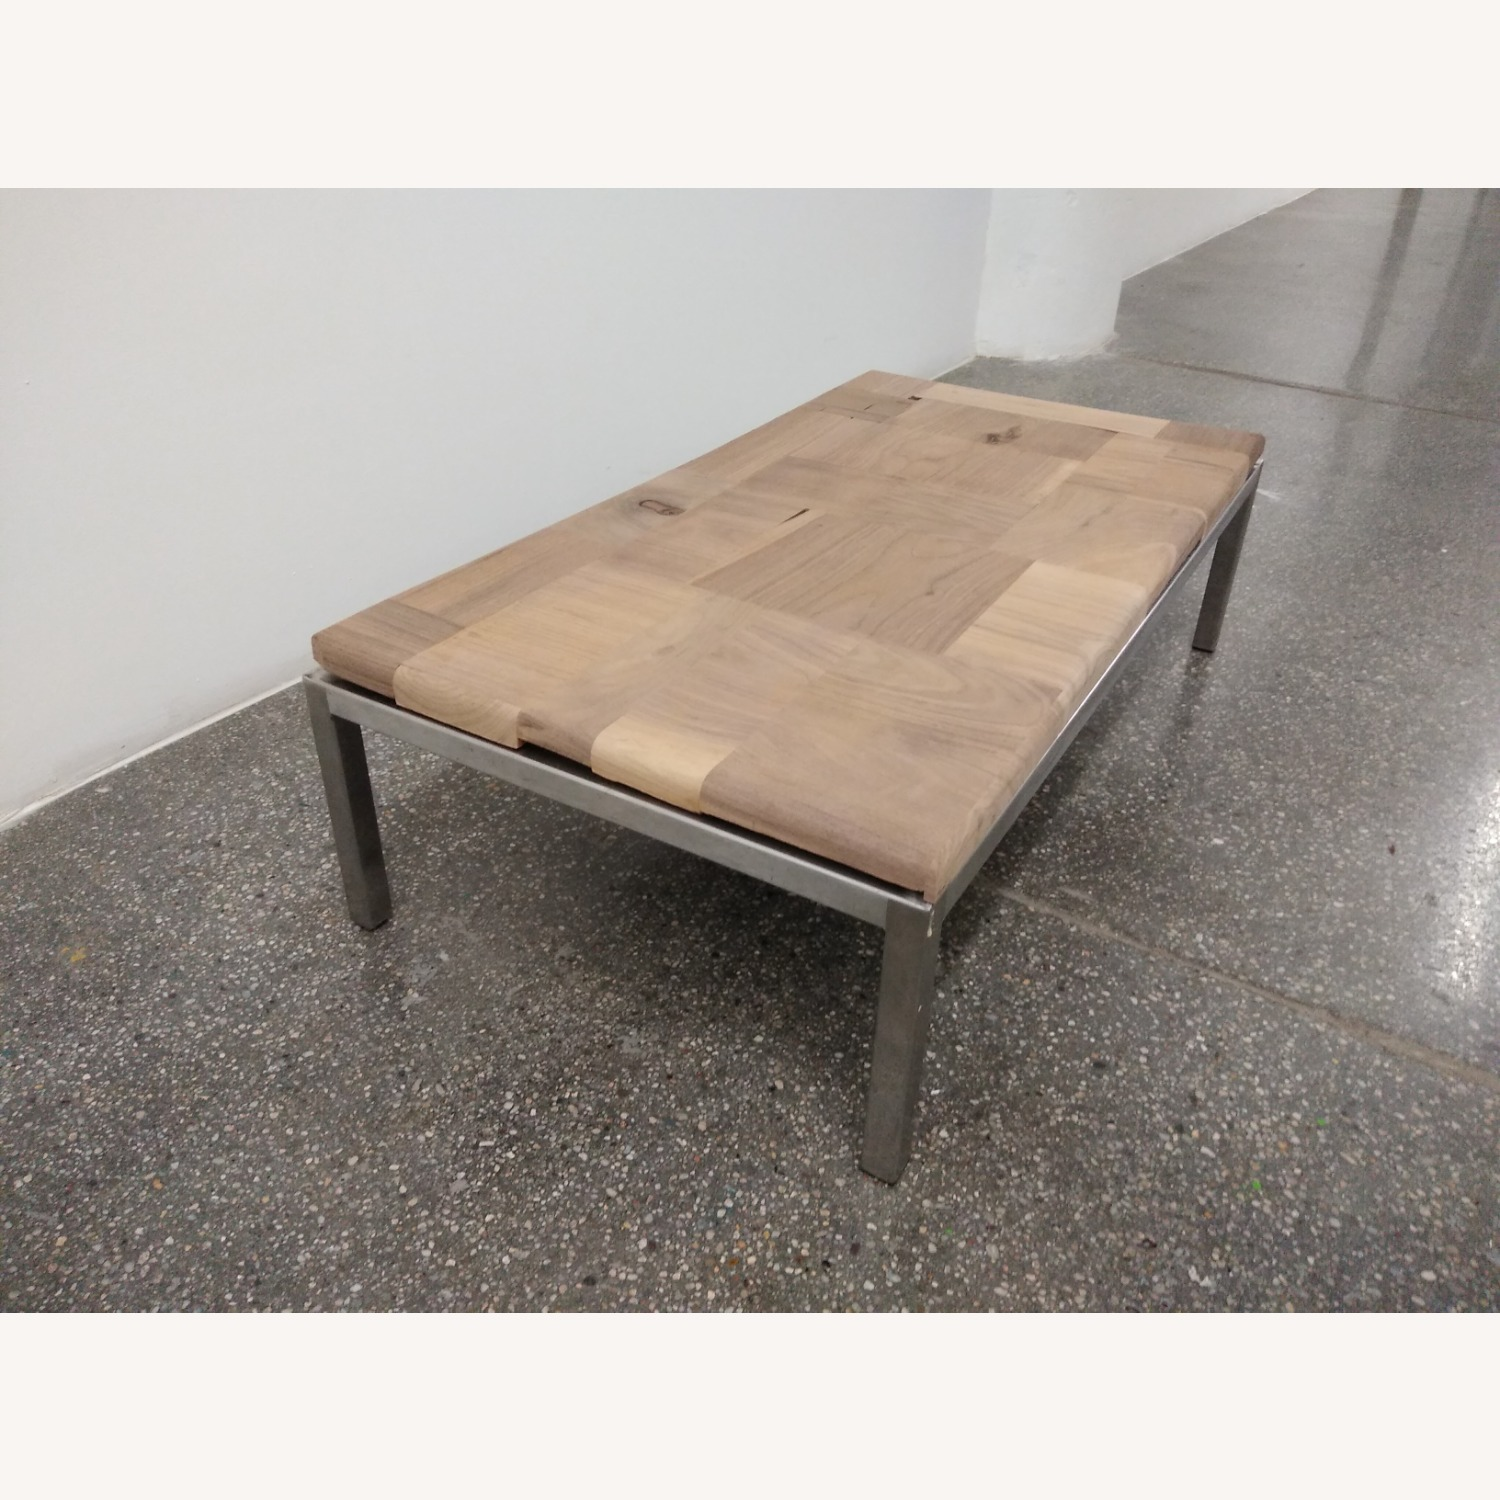 Restoration Hardware Solid Walnut Mosaic Coffee Table - image-4